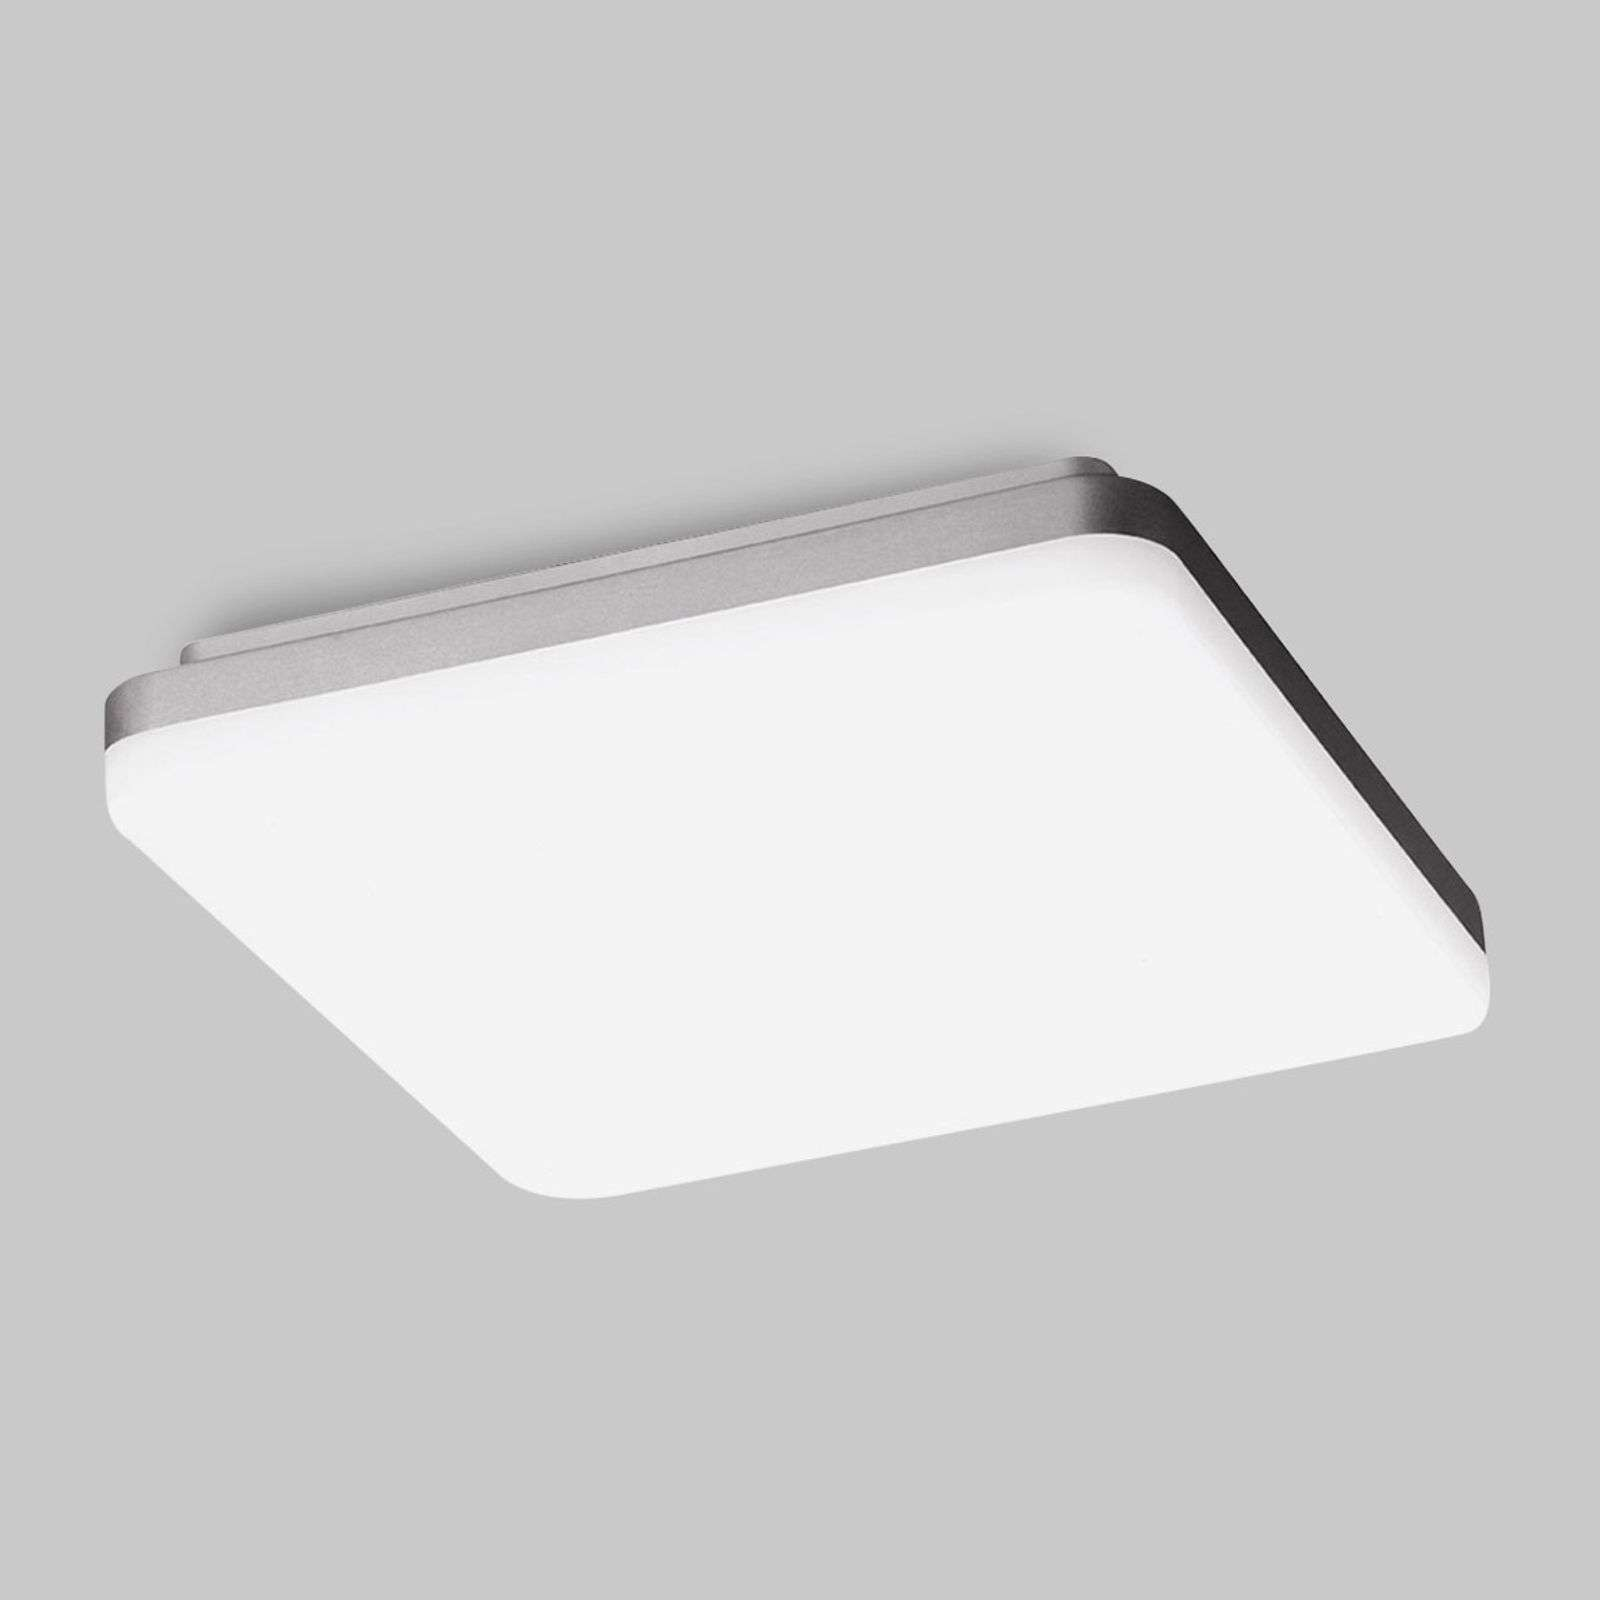 Applique LED WL260 carrée opale 3 000 K